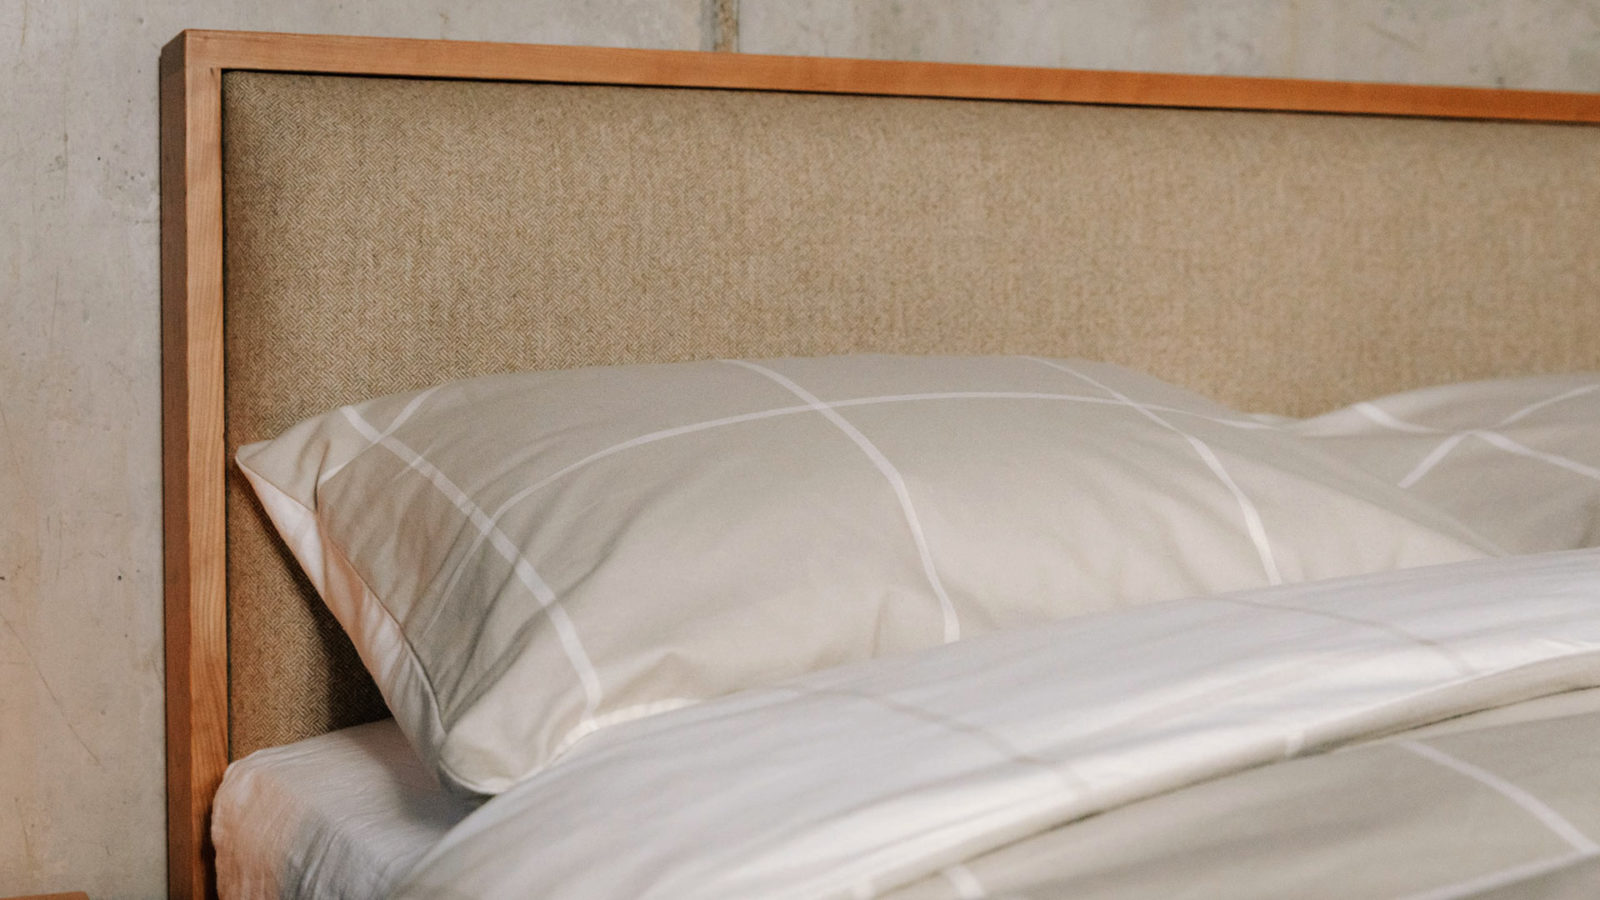 brushed cotton bedding in beige and ivory against Shetland wooden bed padded headboard